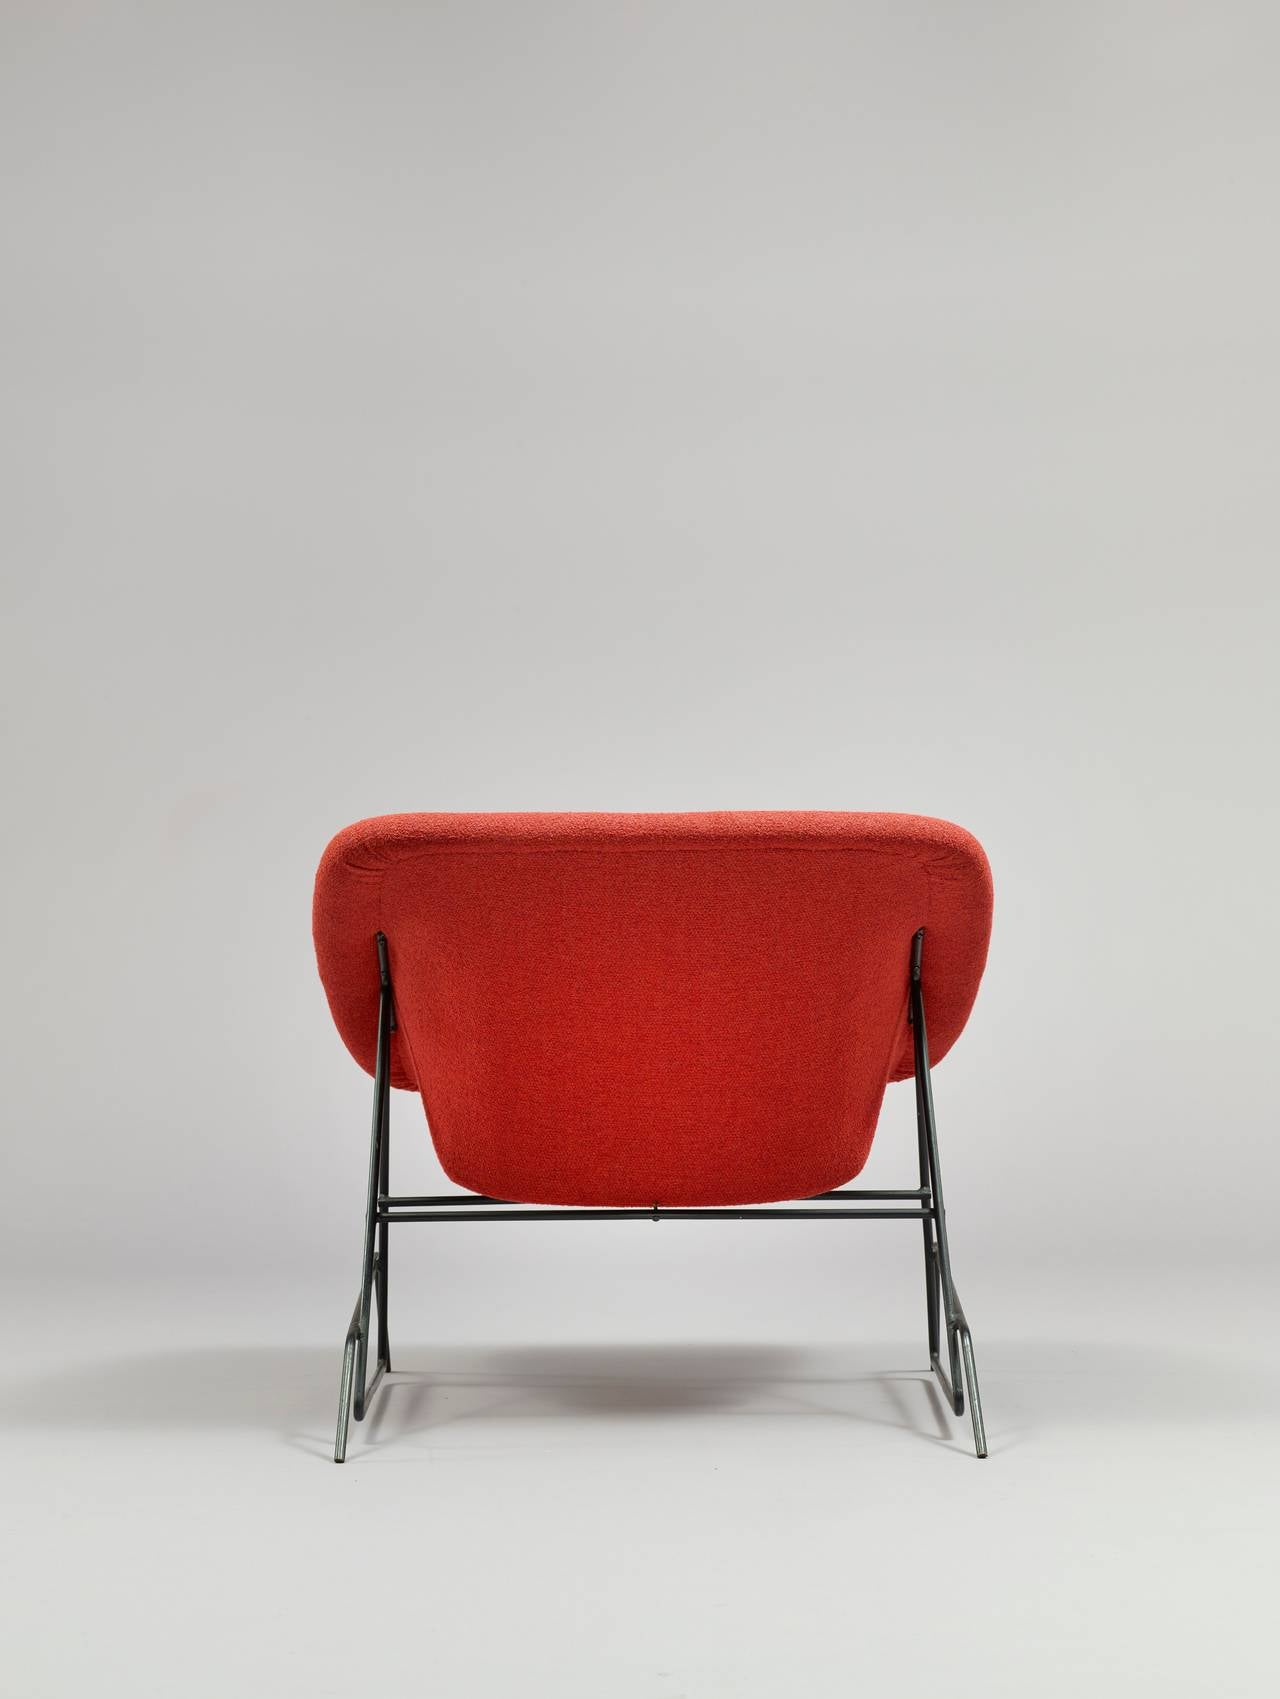 armchair a7 by arp steiner edition 1954 for sale at 1stdibs. Black Bedroom Furniture Sets. Home Design Ideas